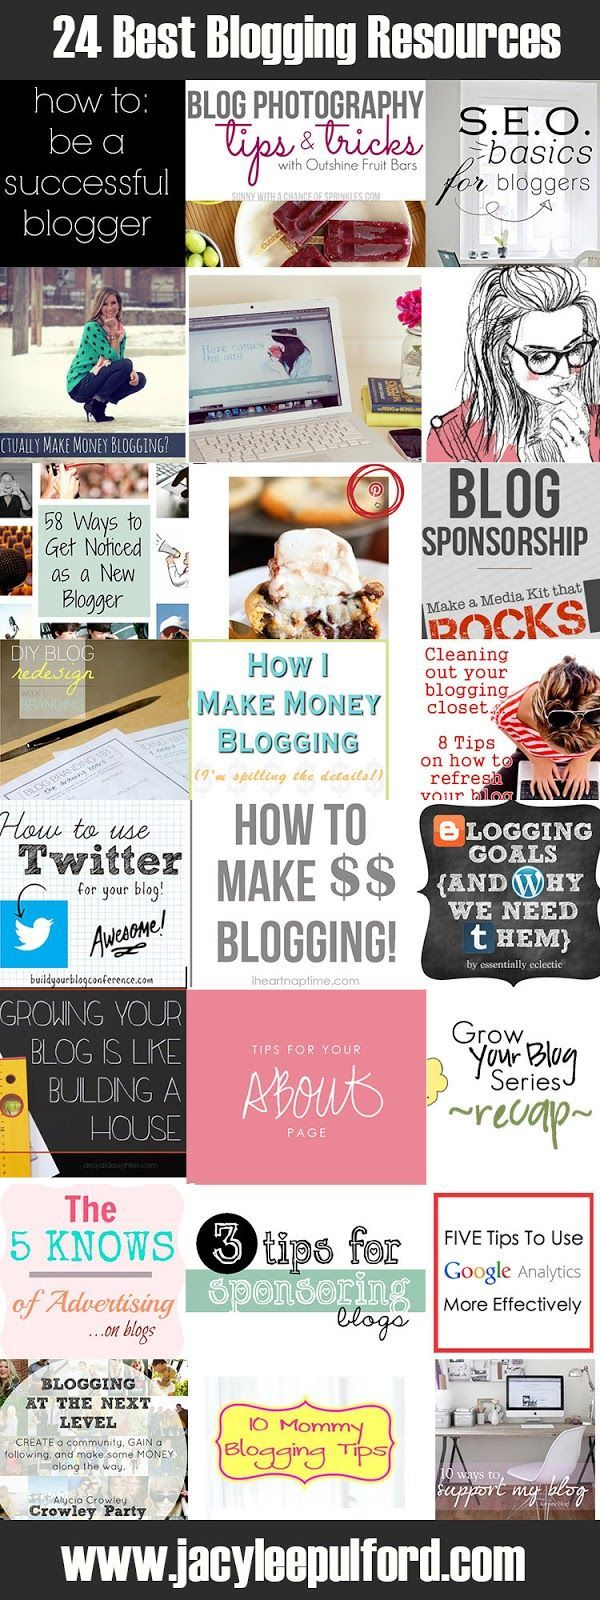 The 24 Best Blogging Resources http://www.jacyleepulford.com/2013 ...